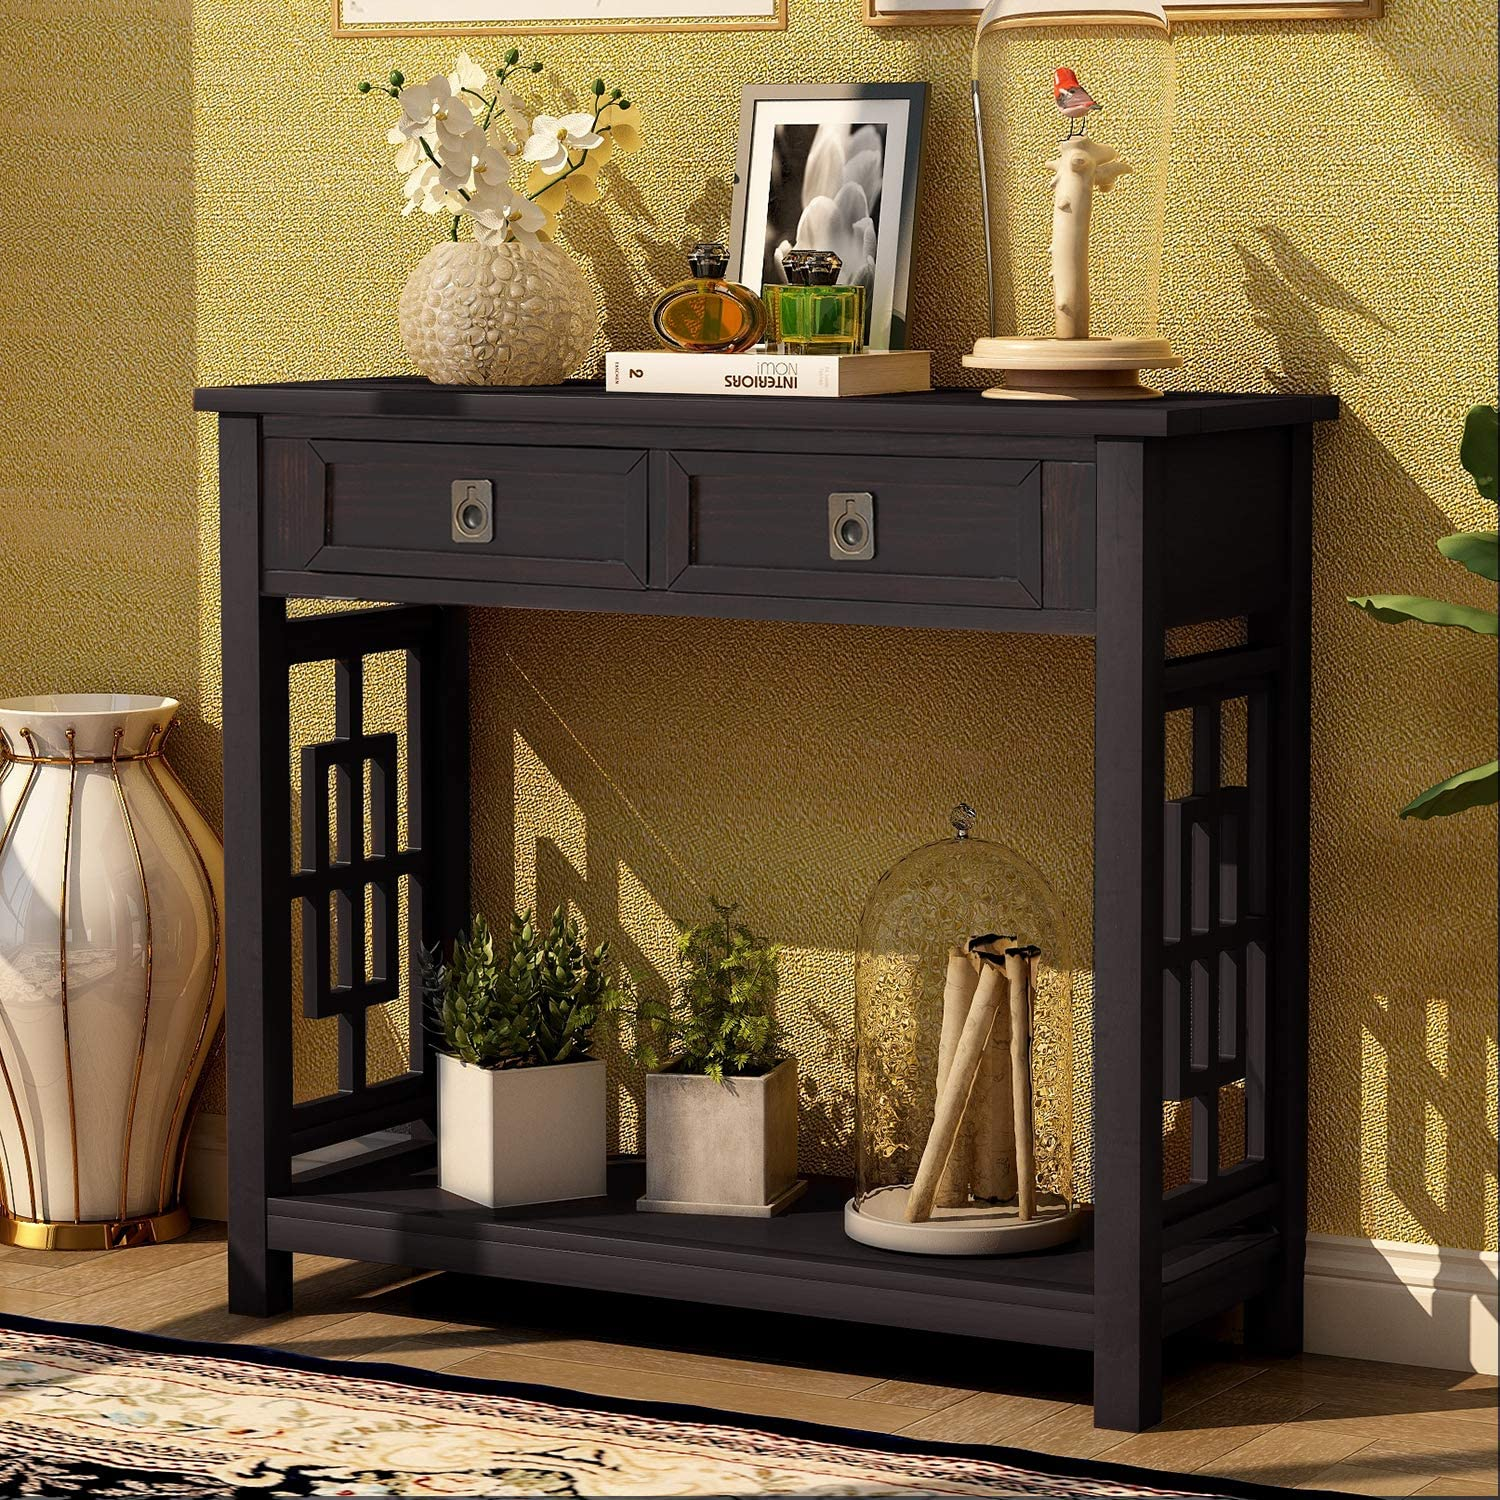 P PURLOVE Console Table Sofa Table with 2 Drawers and Bottom Shelf, Accent Console Table for Living Room, Easy Assemble Sideboard Table for Hallway,Entryway,Espresso